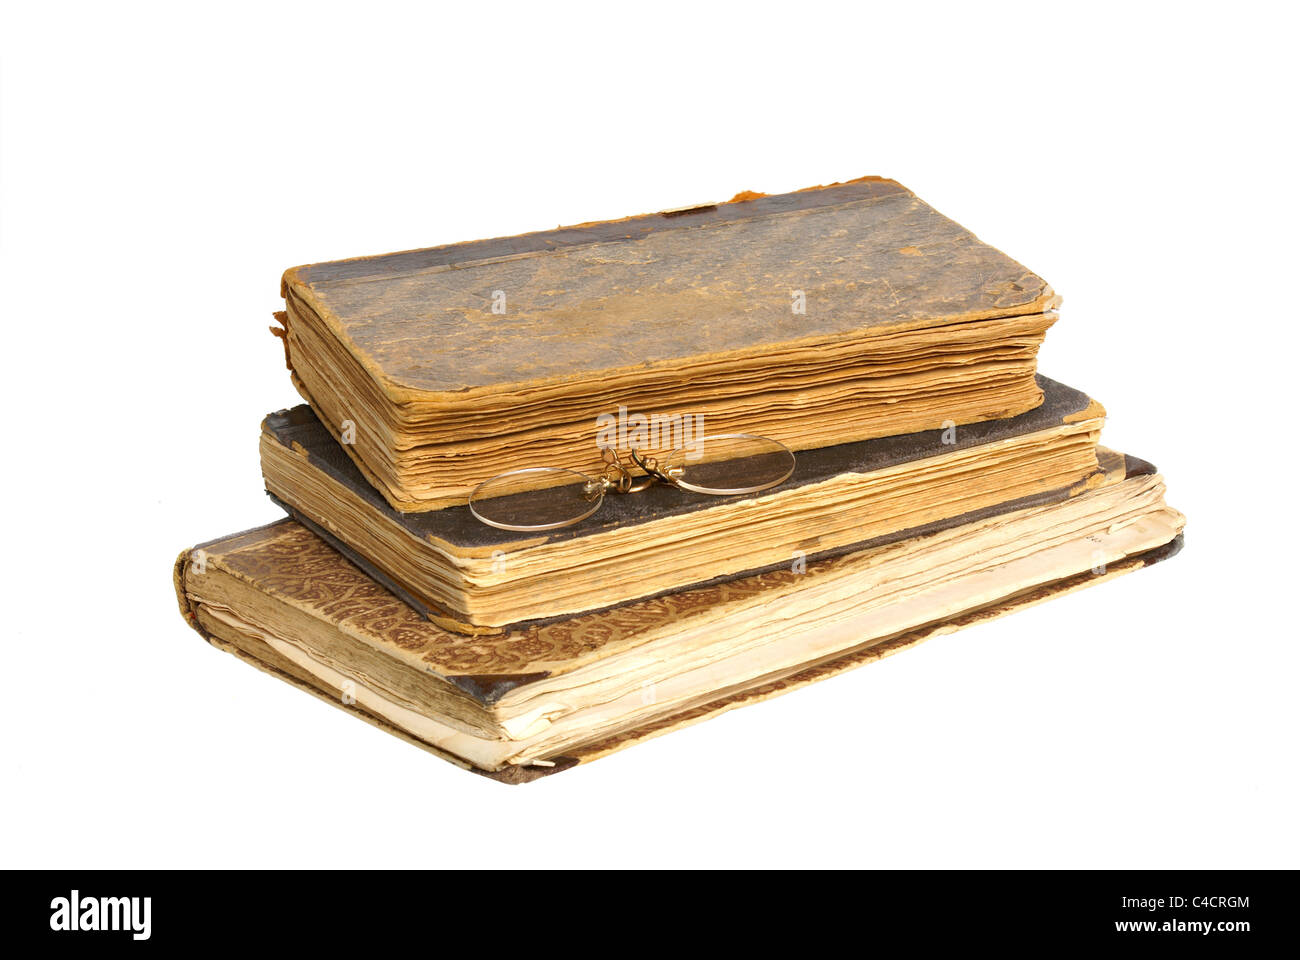 antique book with glasses isolated on white background - Stock Image